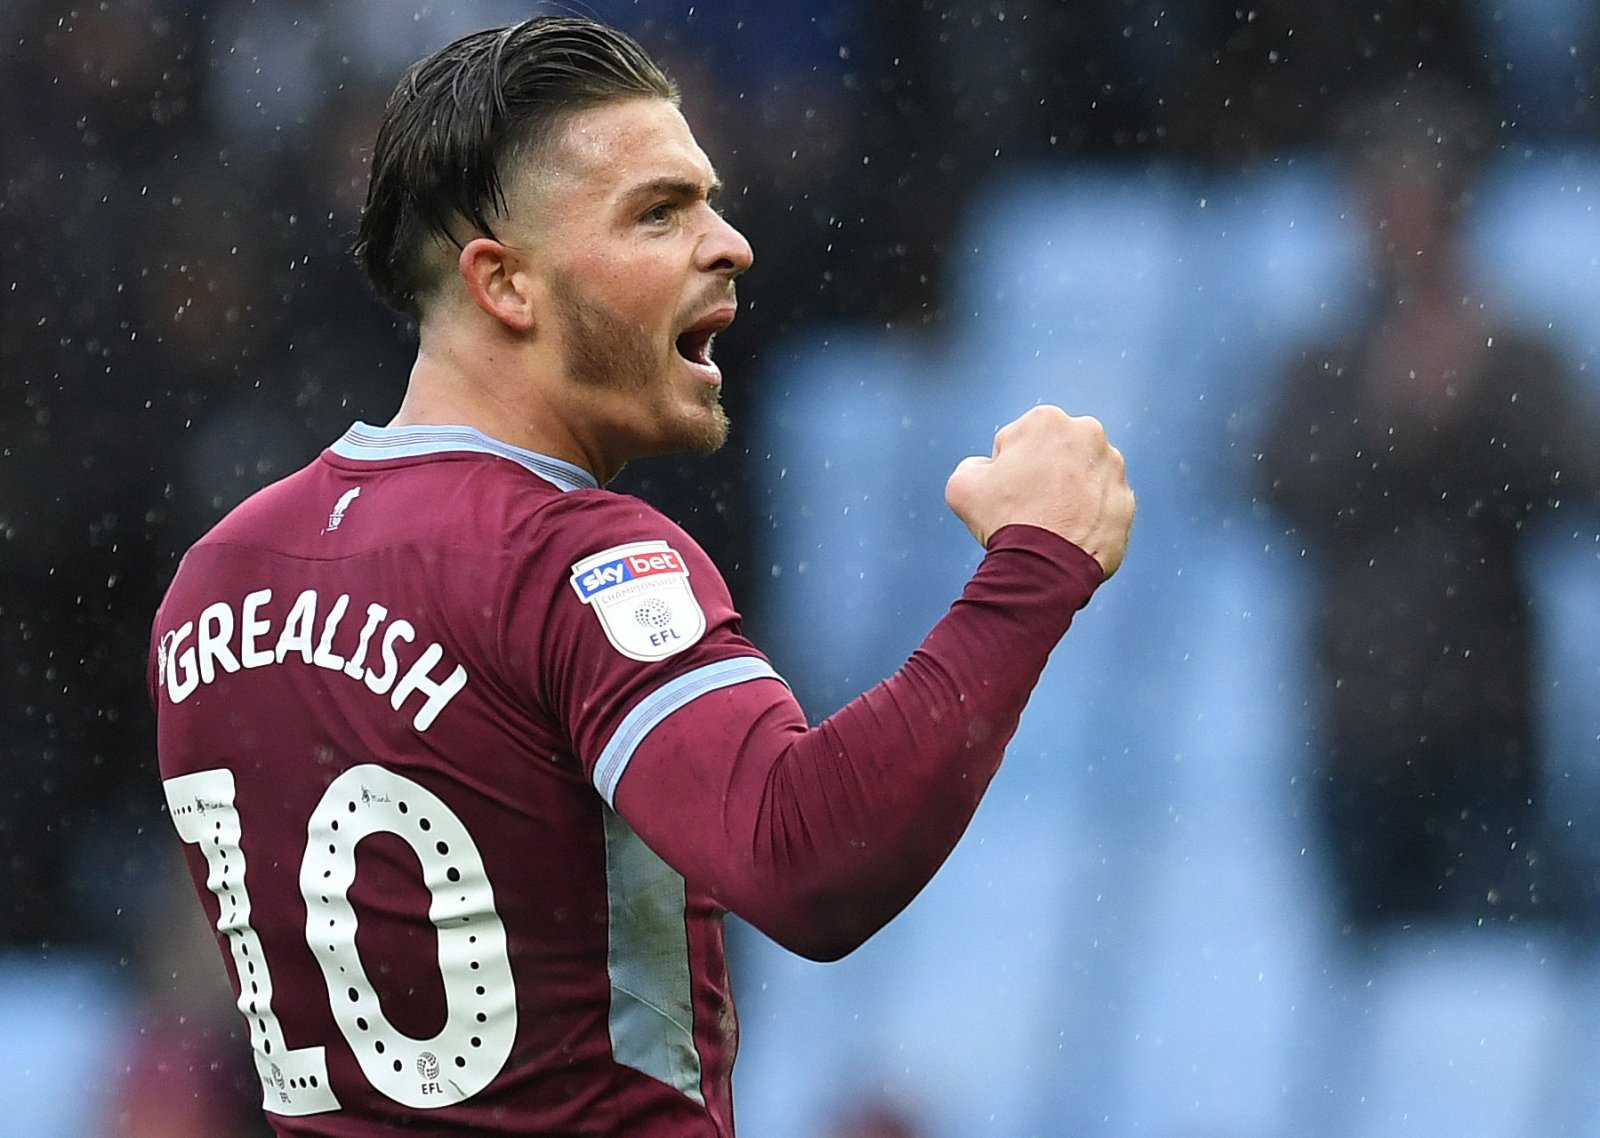 Potential Consequences: Crystal Palace sign Jack Grealish